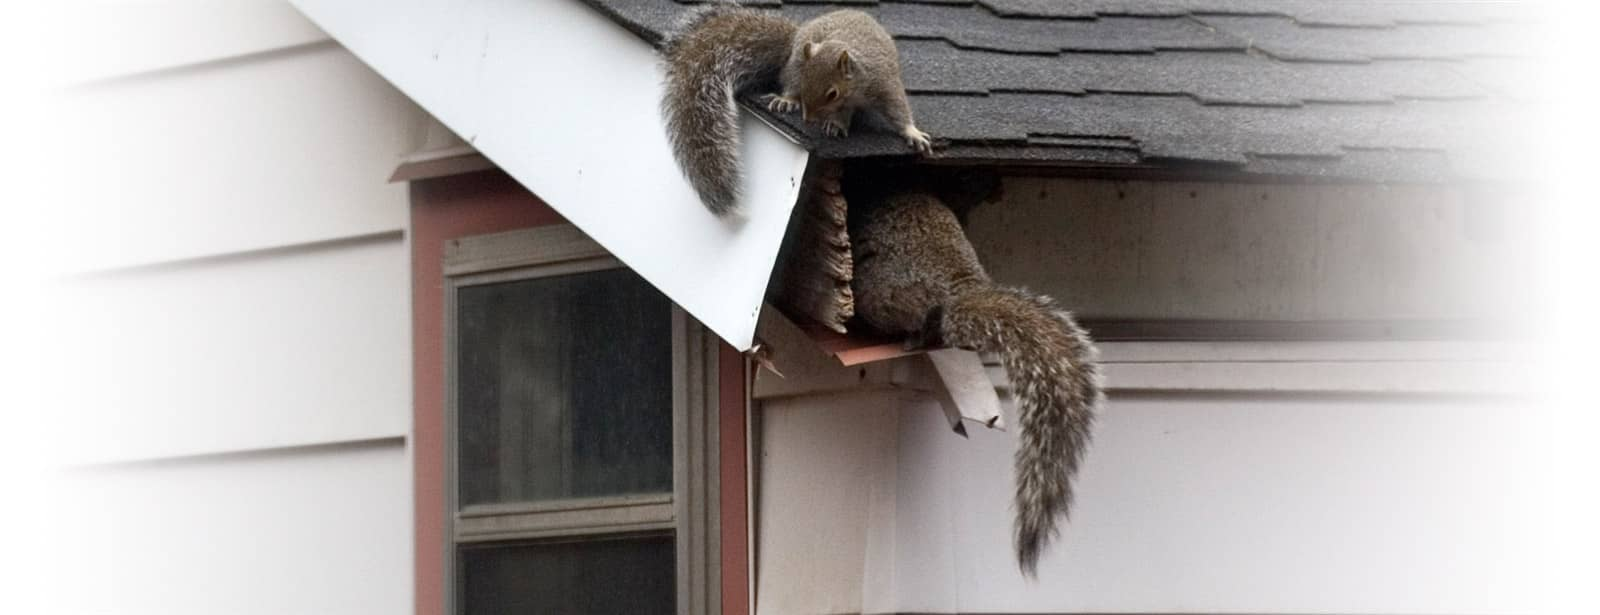 gray squirrels entering a rhode island home